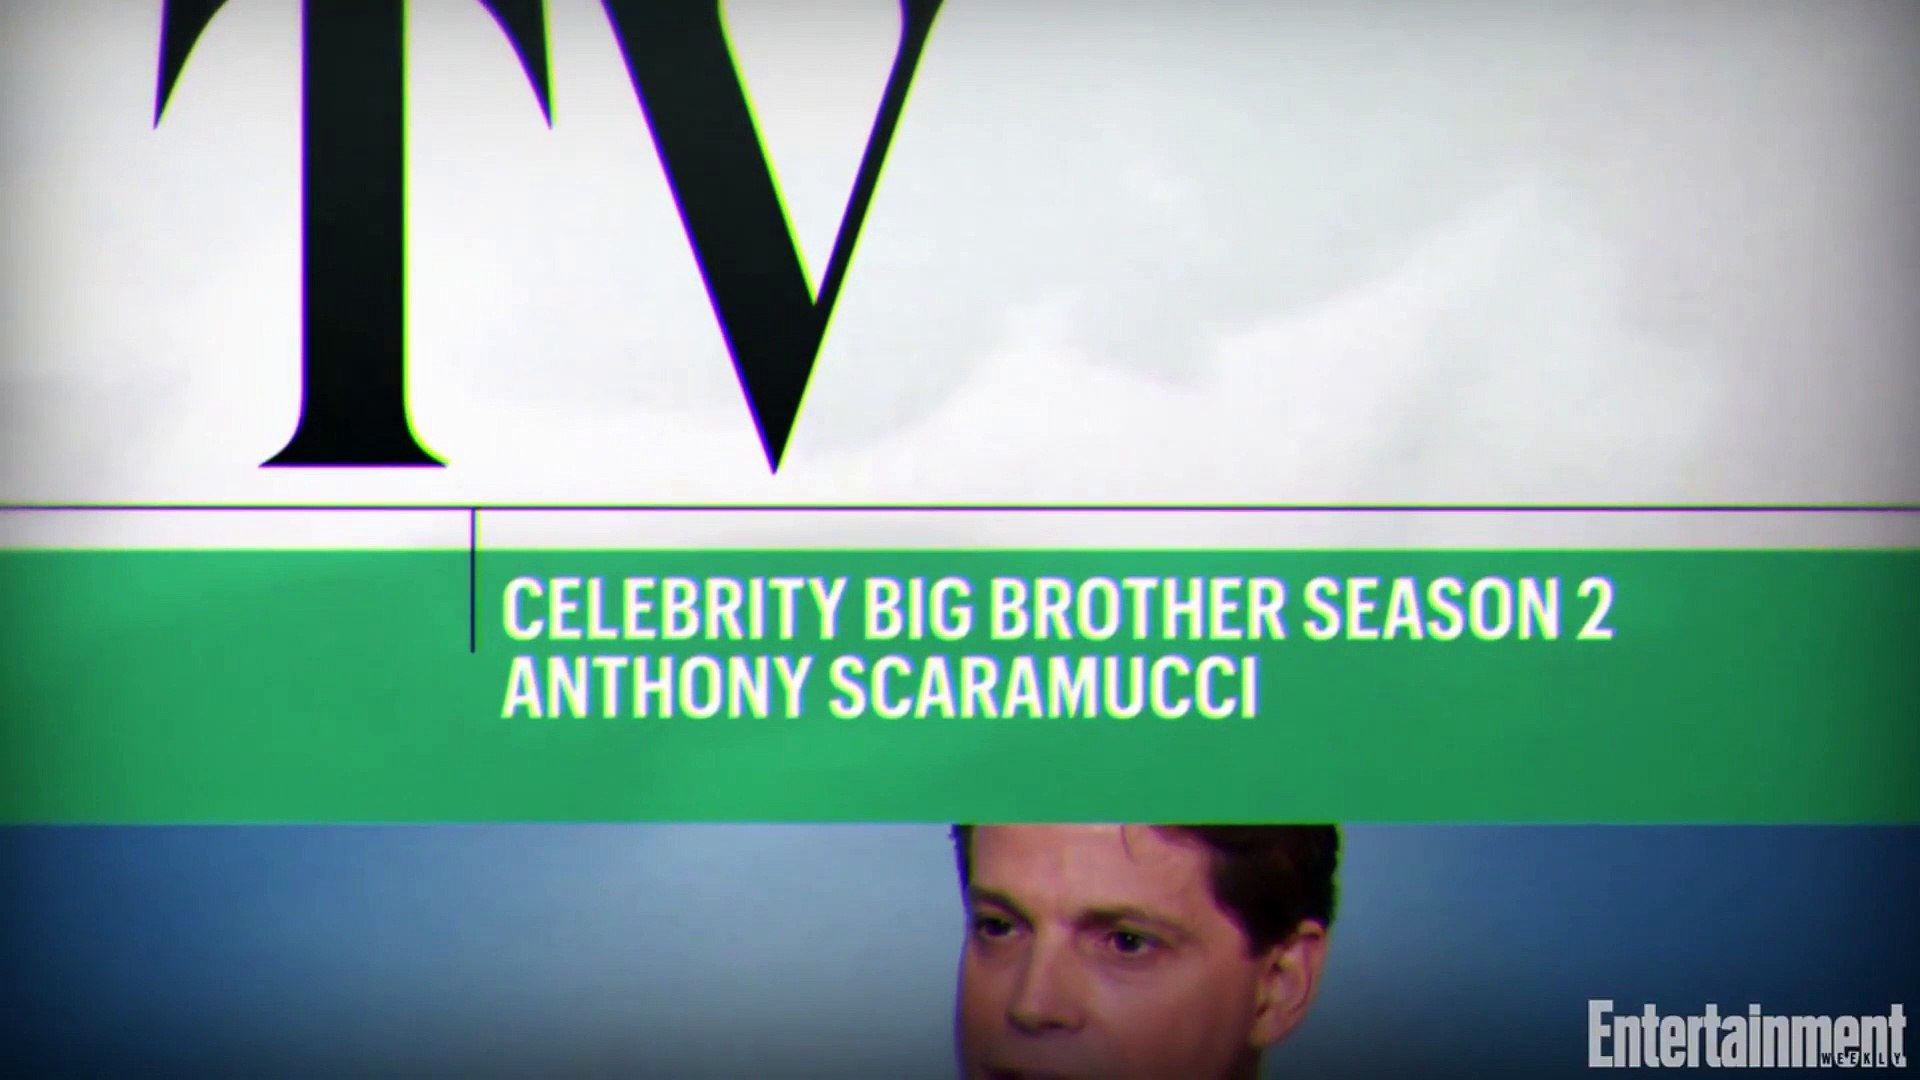 Anthony Scaramucci On What 'Big Brother' & The White House Have In Common | Entertainm